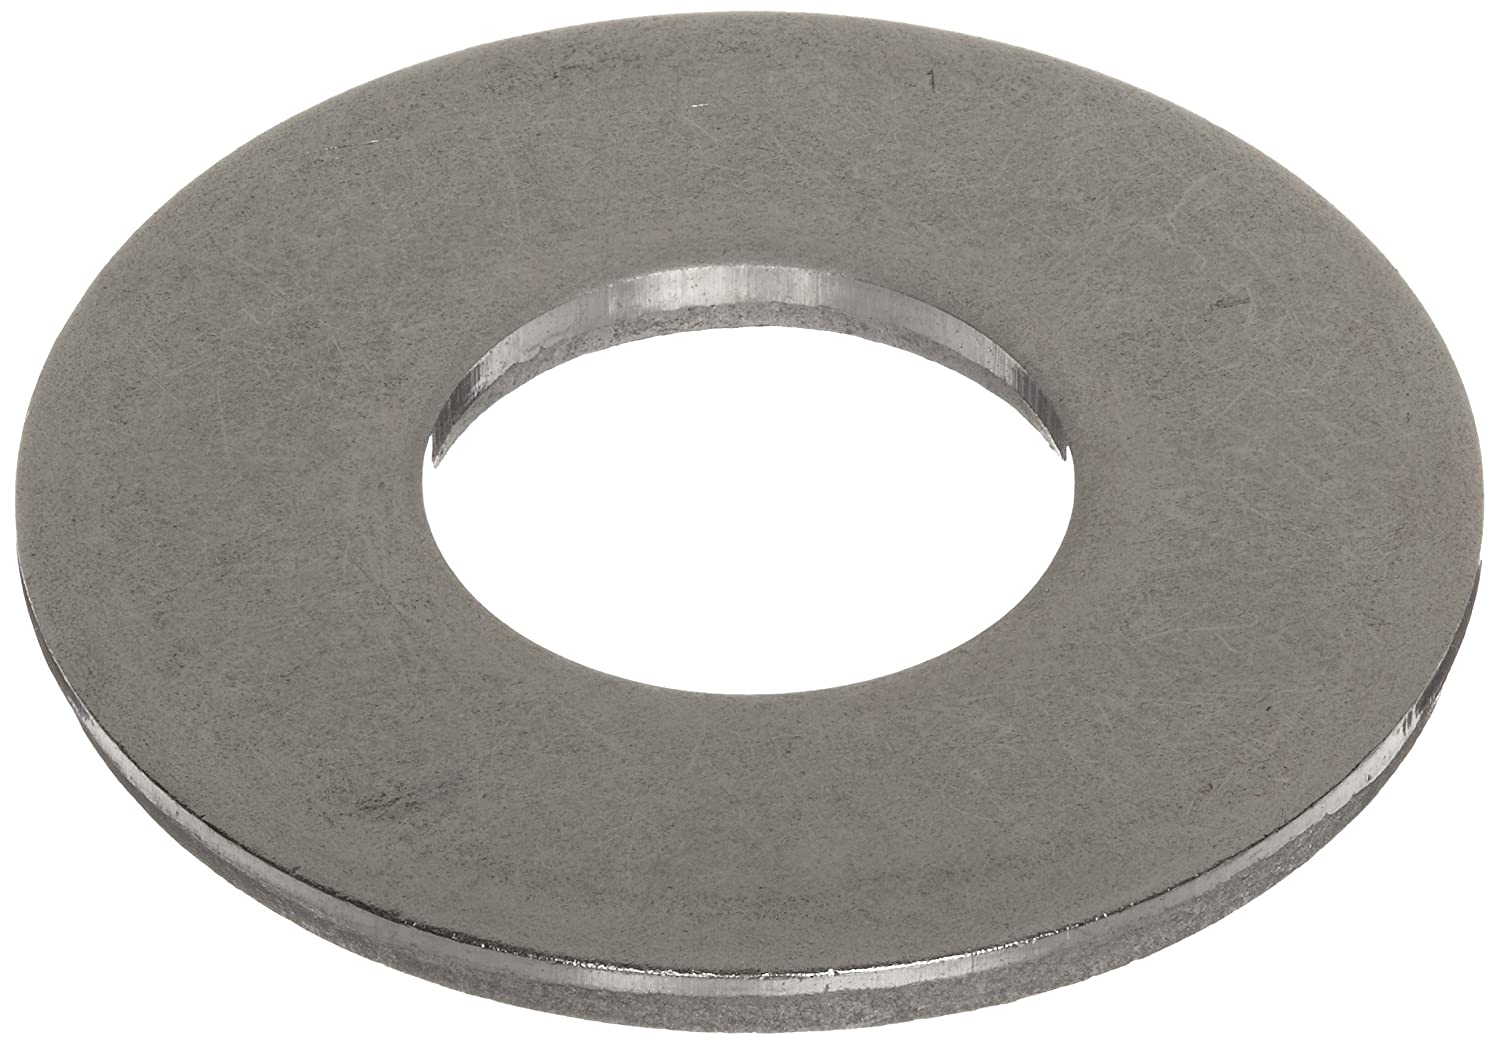 0.312 OD 0.0325 Nominal Thickness 316 Stainless Steel Flat Washer 1//2 Hole Size 0.125 ID 0.312 OD 0.0325 Nominal Thickness Accurate Manufacturing WAS405#4 0.125 ID Made in US 1//2 Hole Size Pack of 100